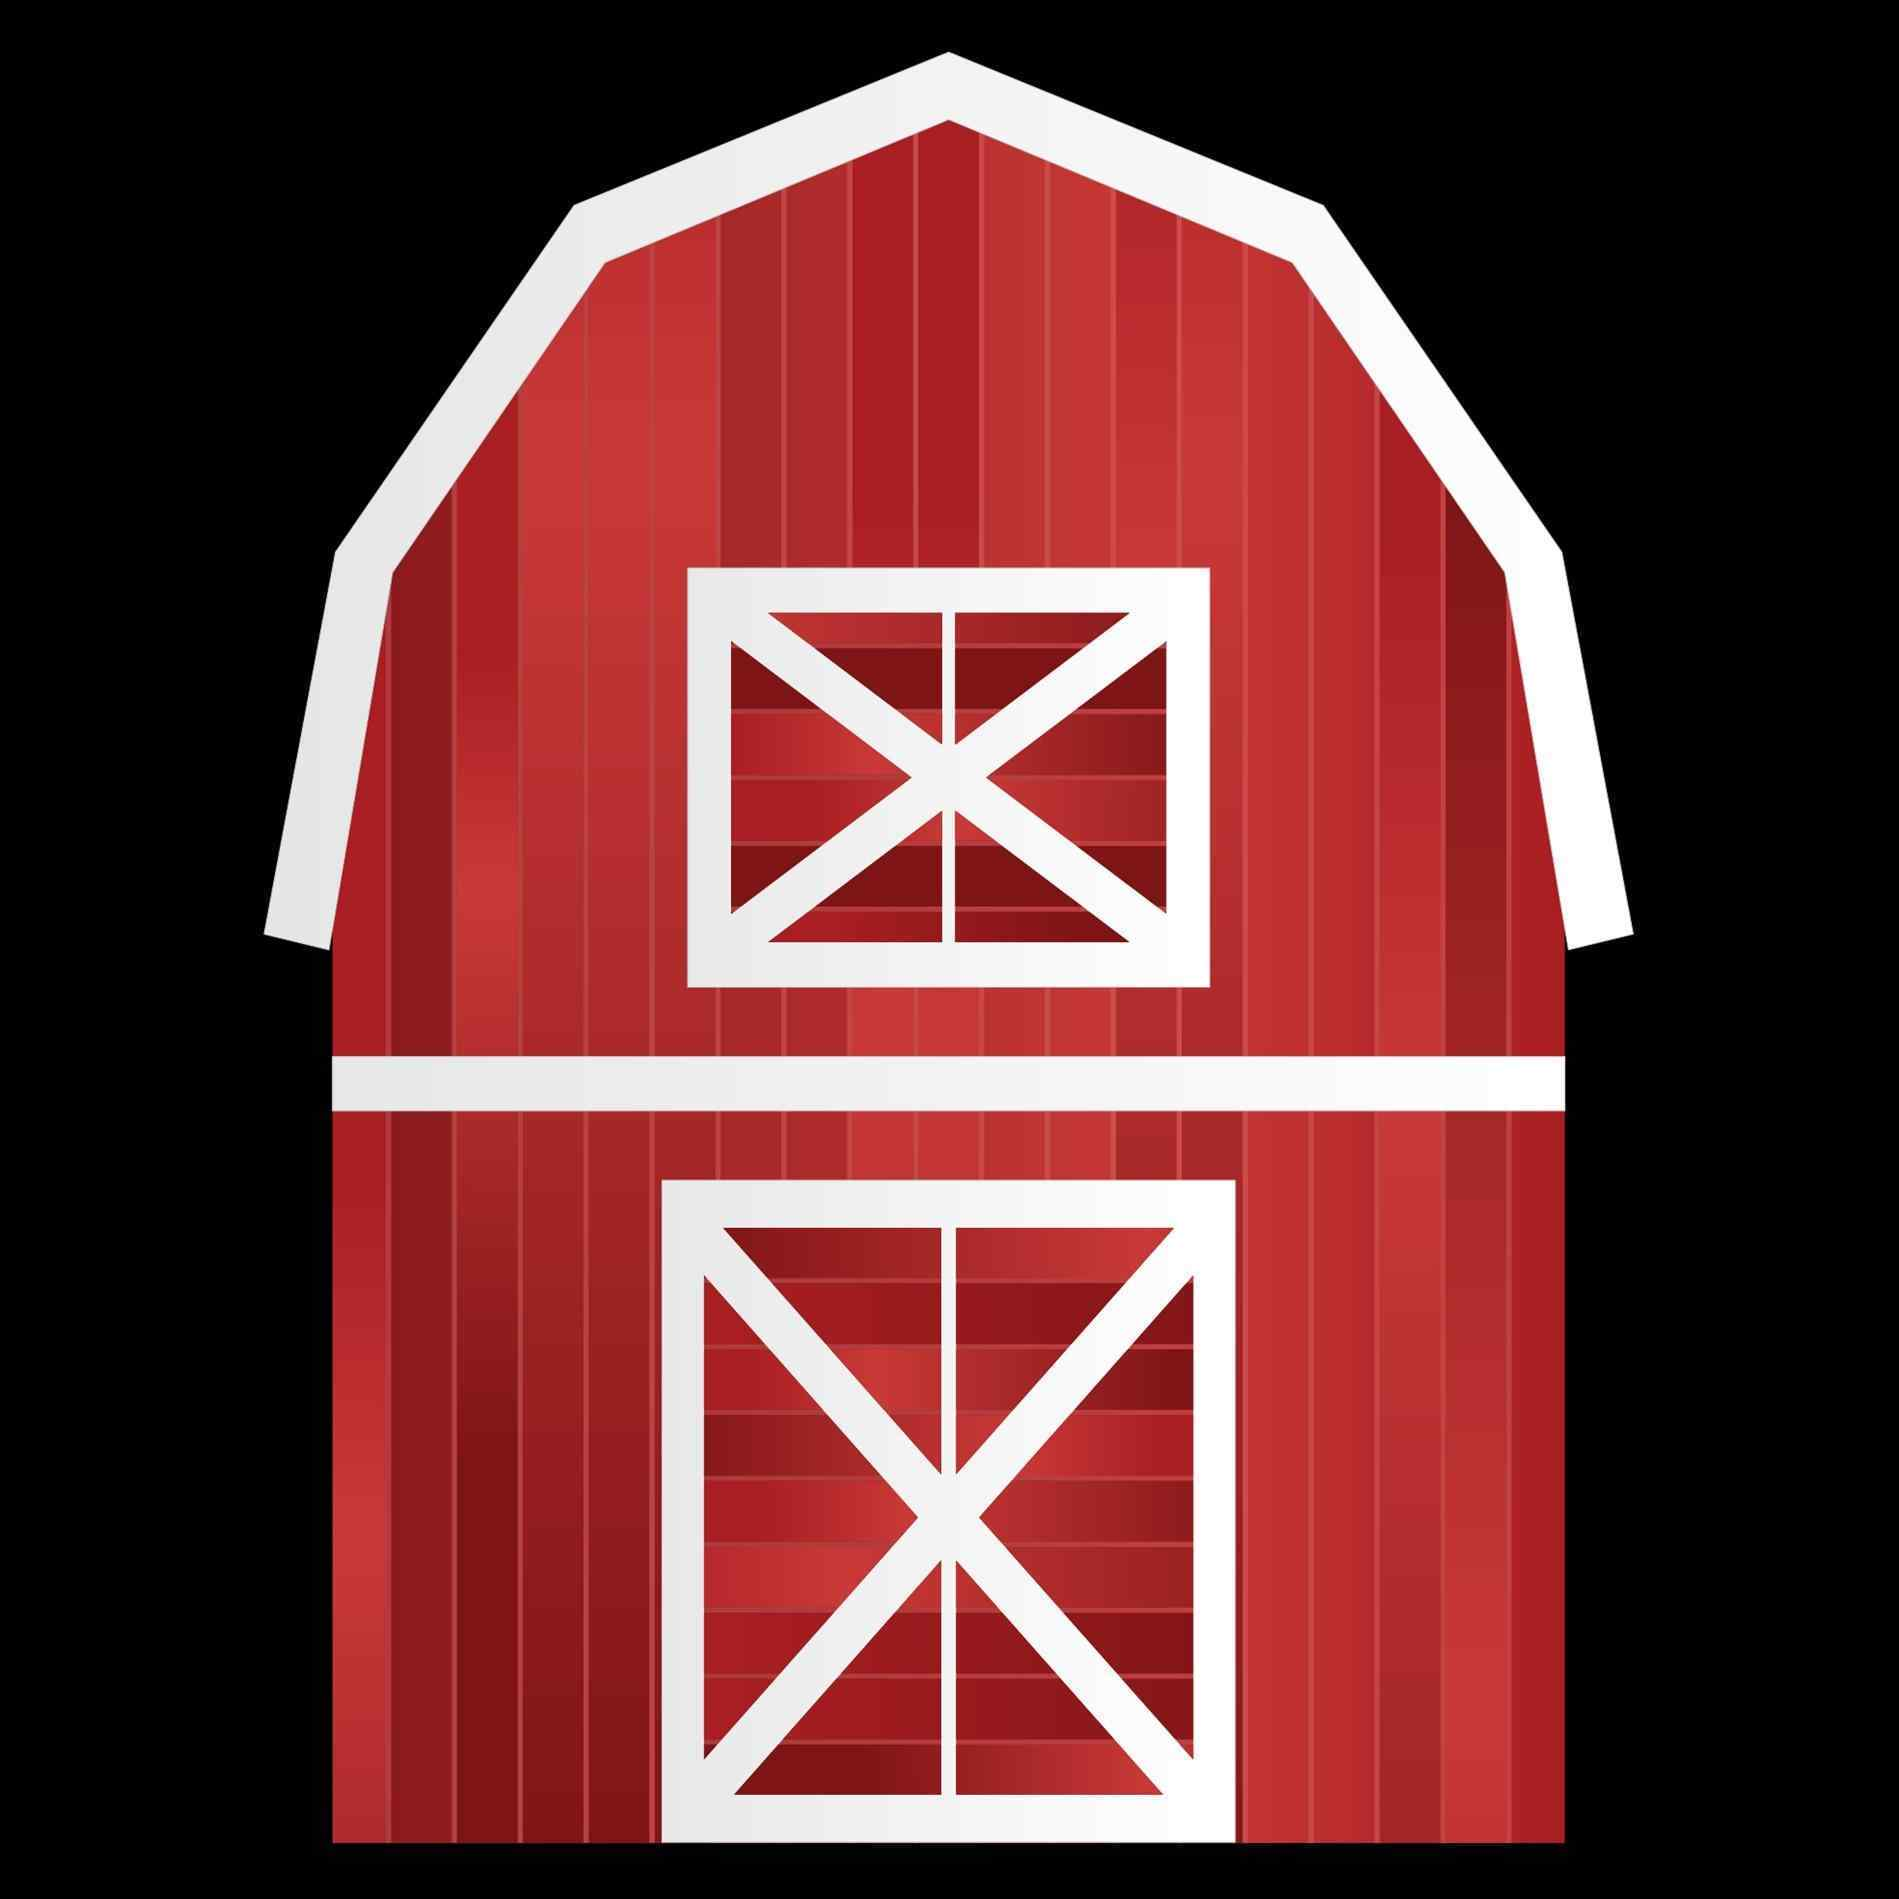 Barn clipart basic. Clip art decorating design